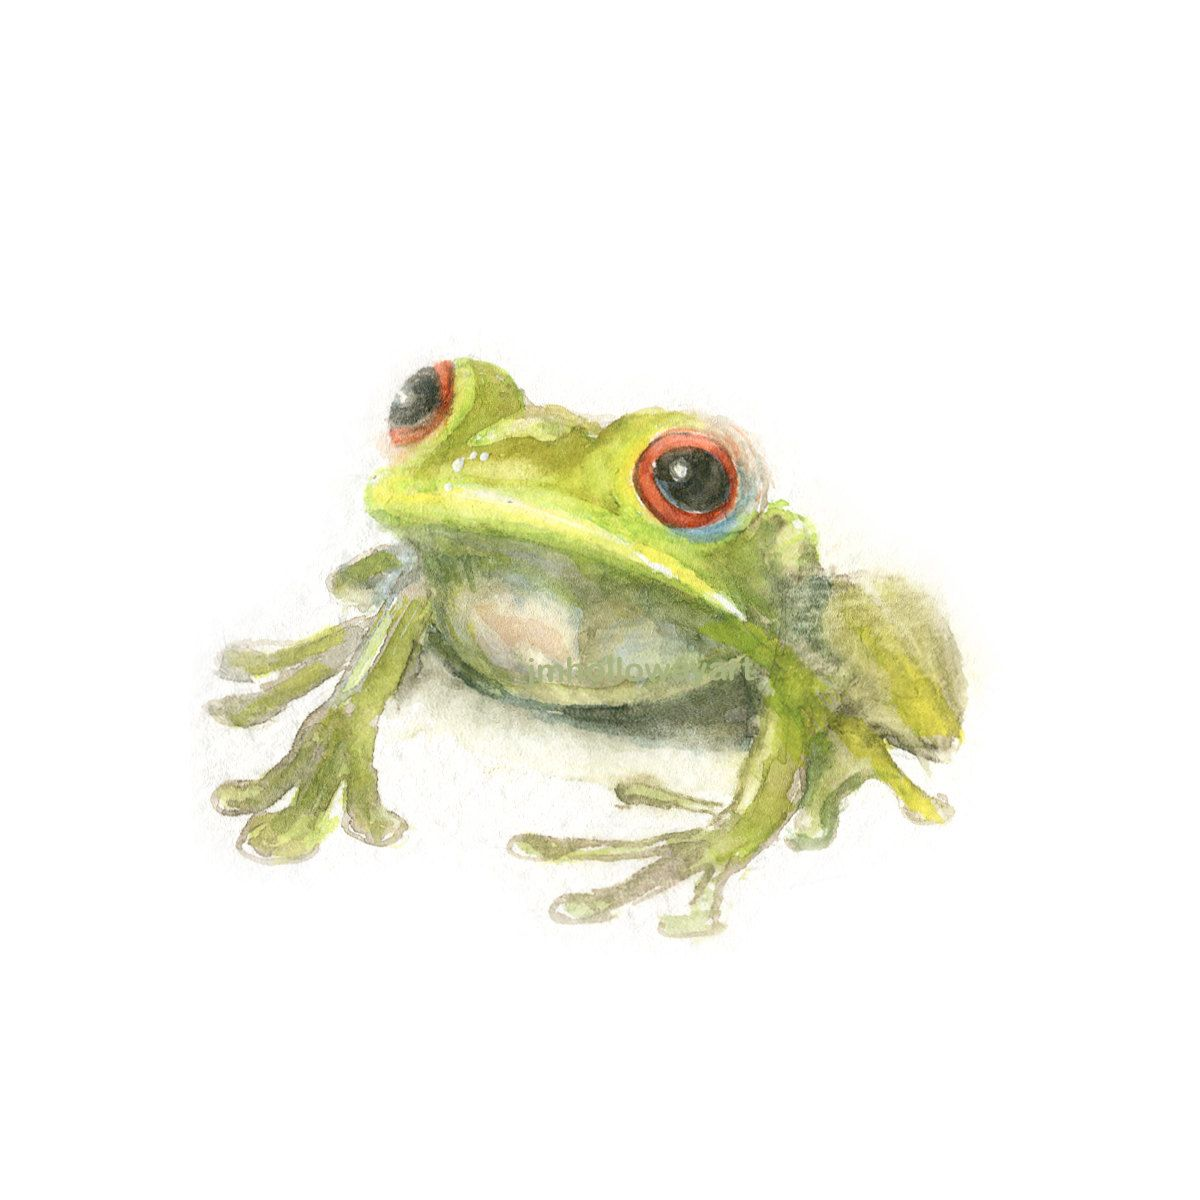 Watercolor Frog, Green Frog Print, Frog Print by locotzinc on Etsy